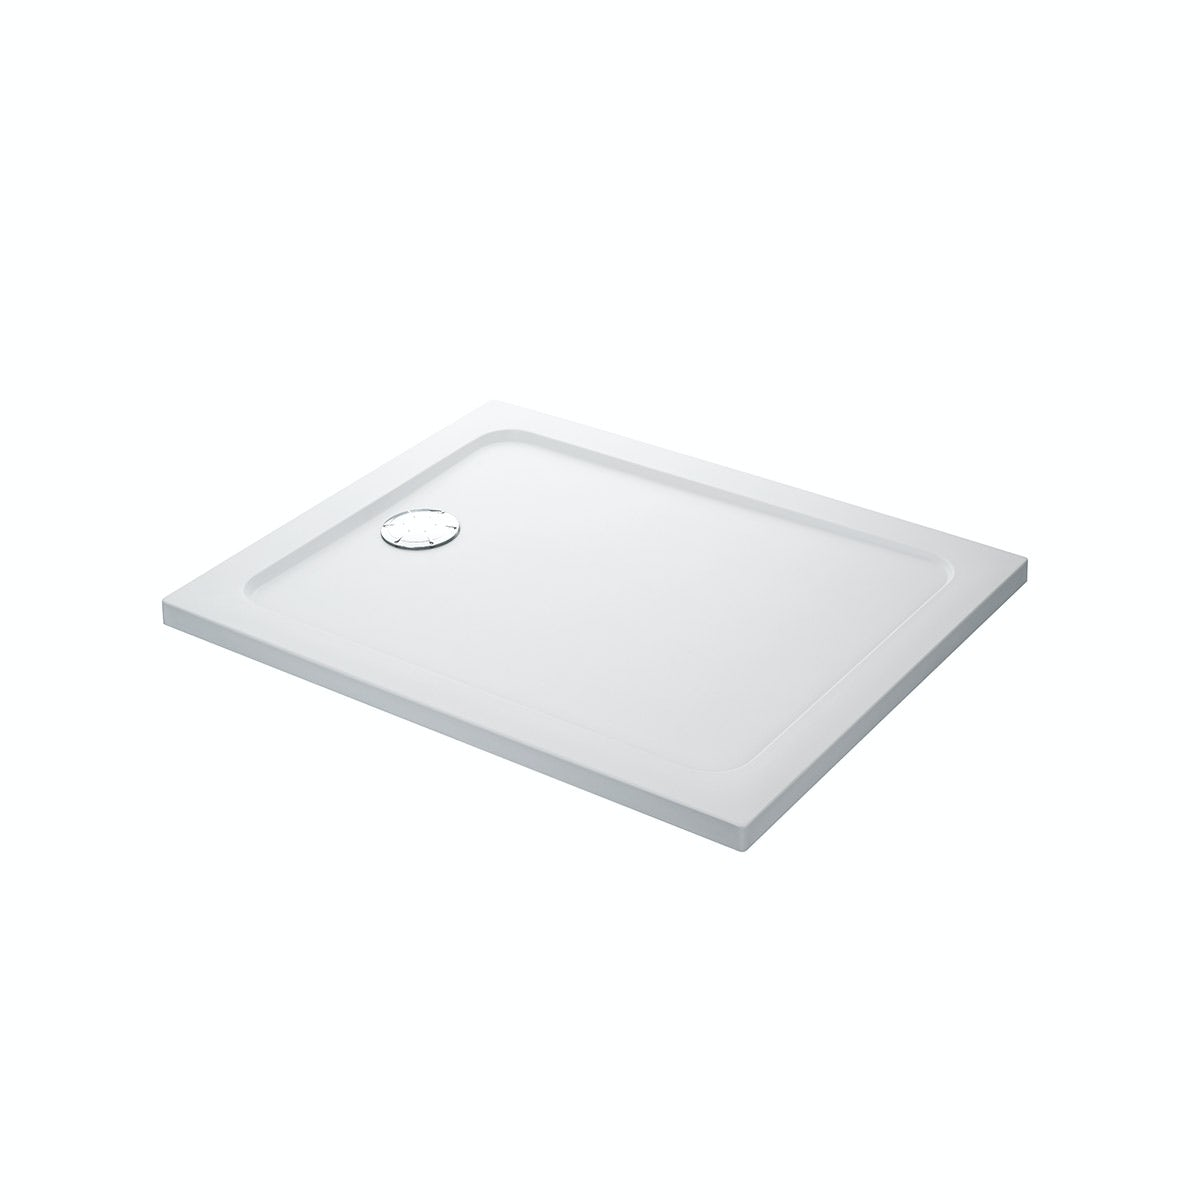 Mira Flight Safe Antislip Rectangular Shower Tray